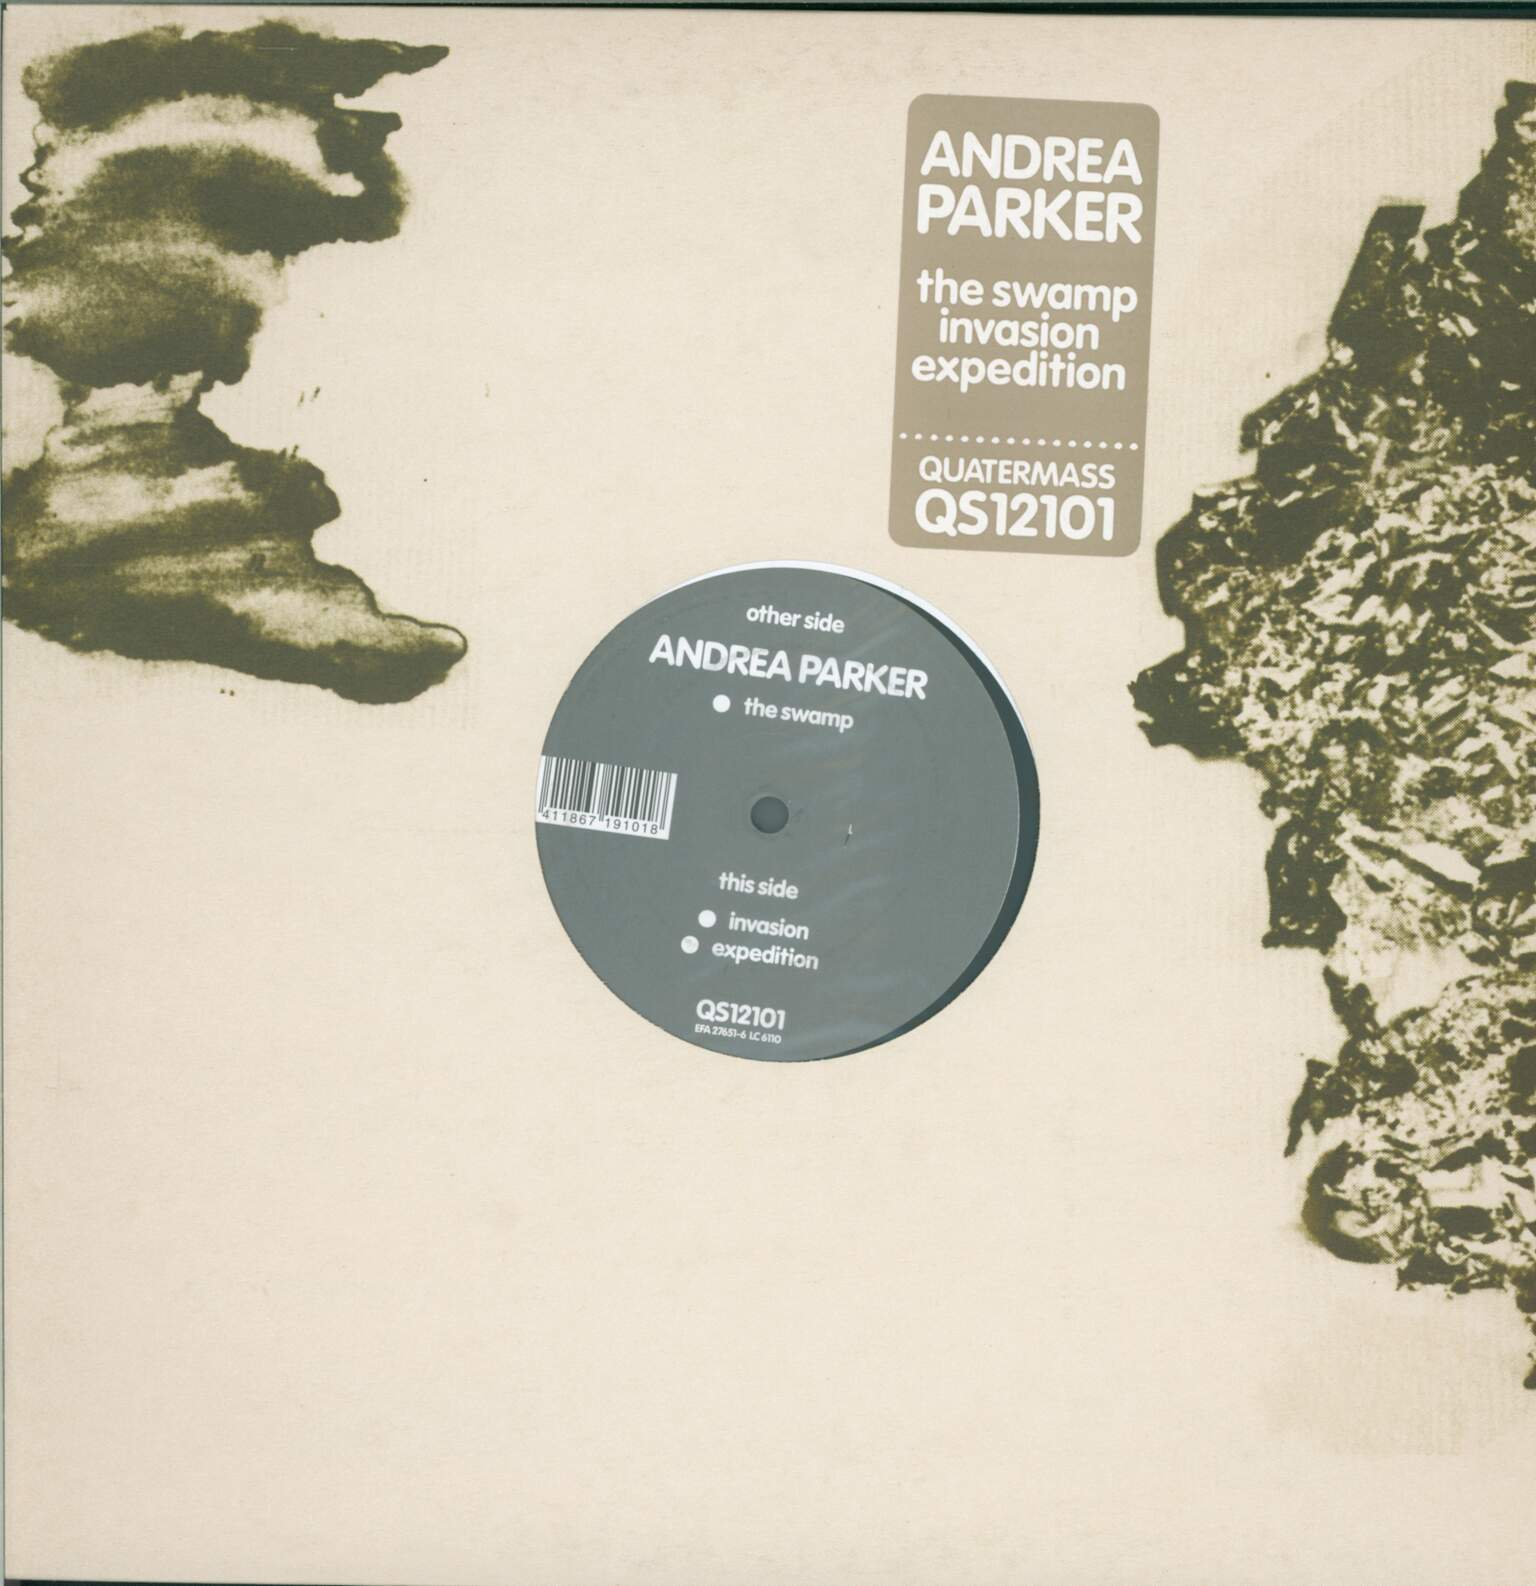 Andrea Parker: The Swamp, 1×LP (Vinyl)